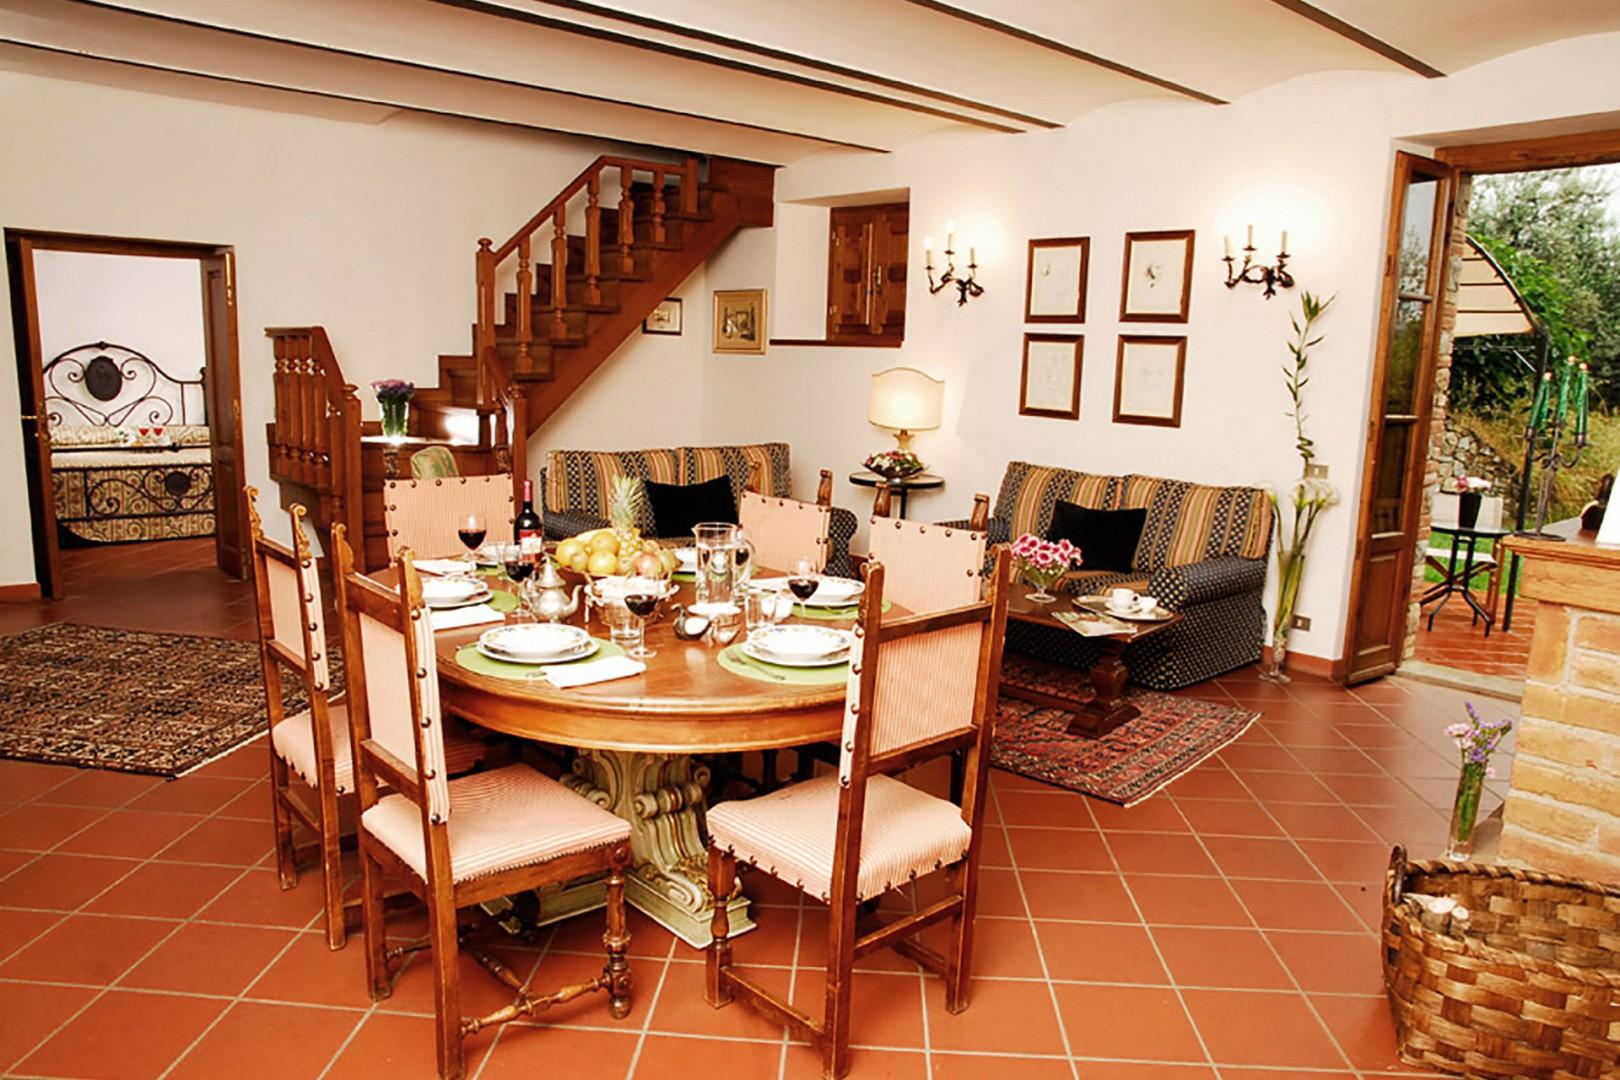 This is a two floor apartment, see the stairs off the dining area.